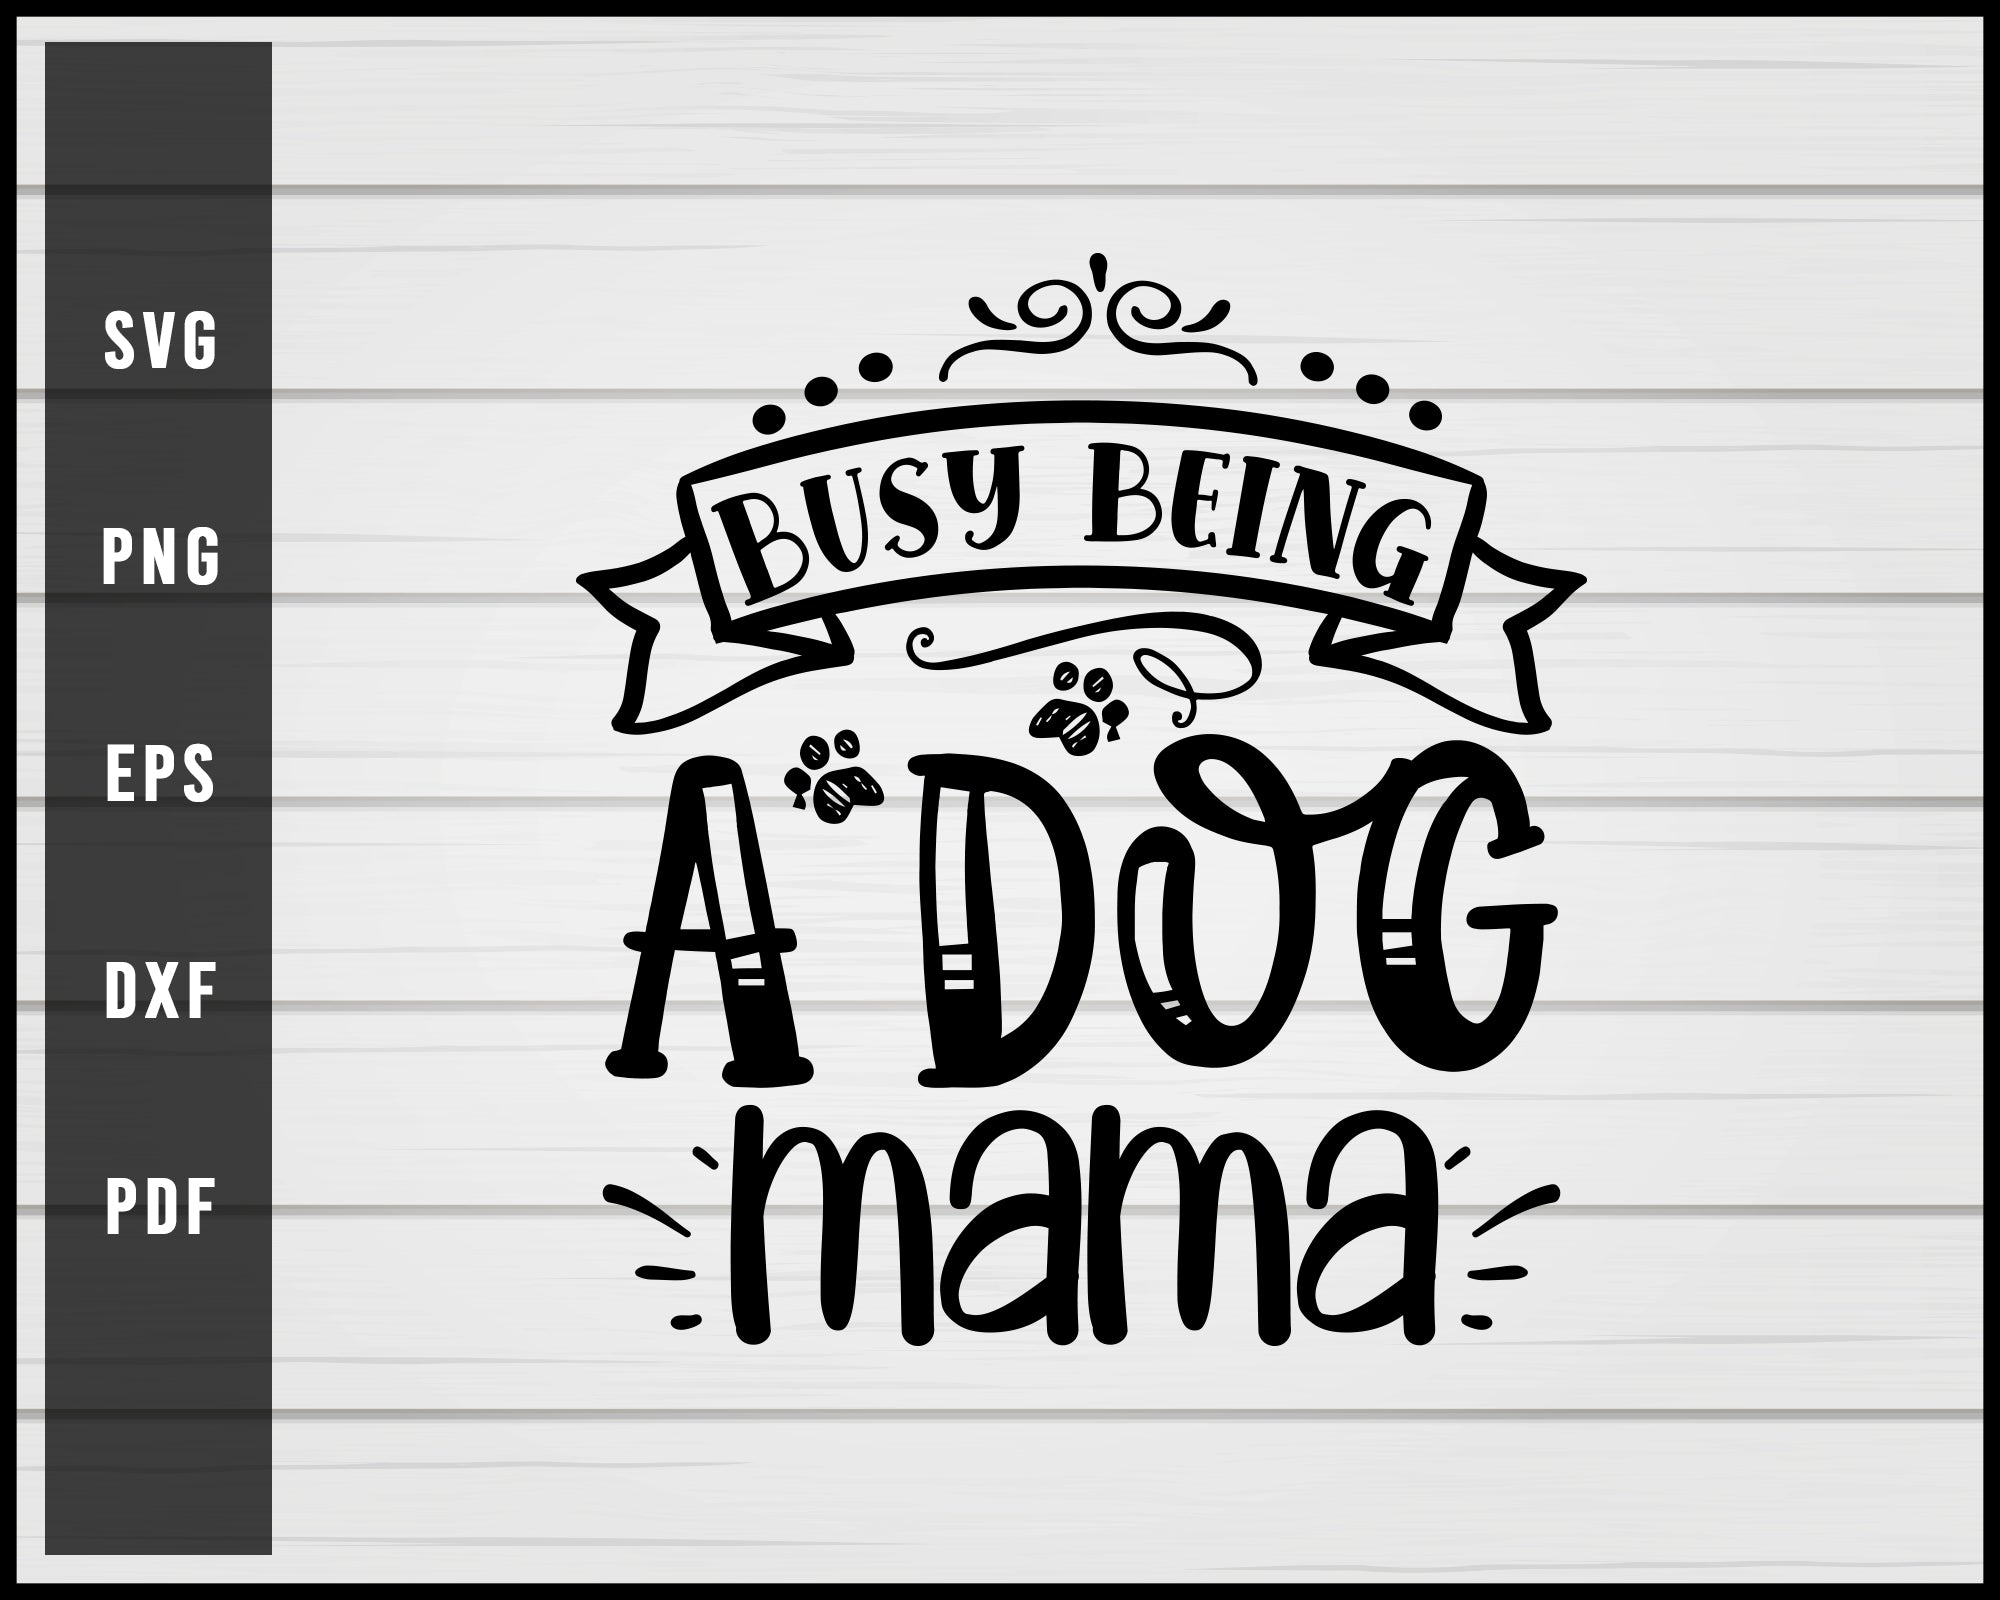 Busy being a dog mama svg png eps Silhouette Designs For Cricut And Printable Files